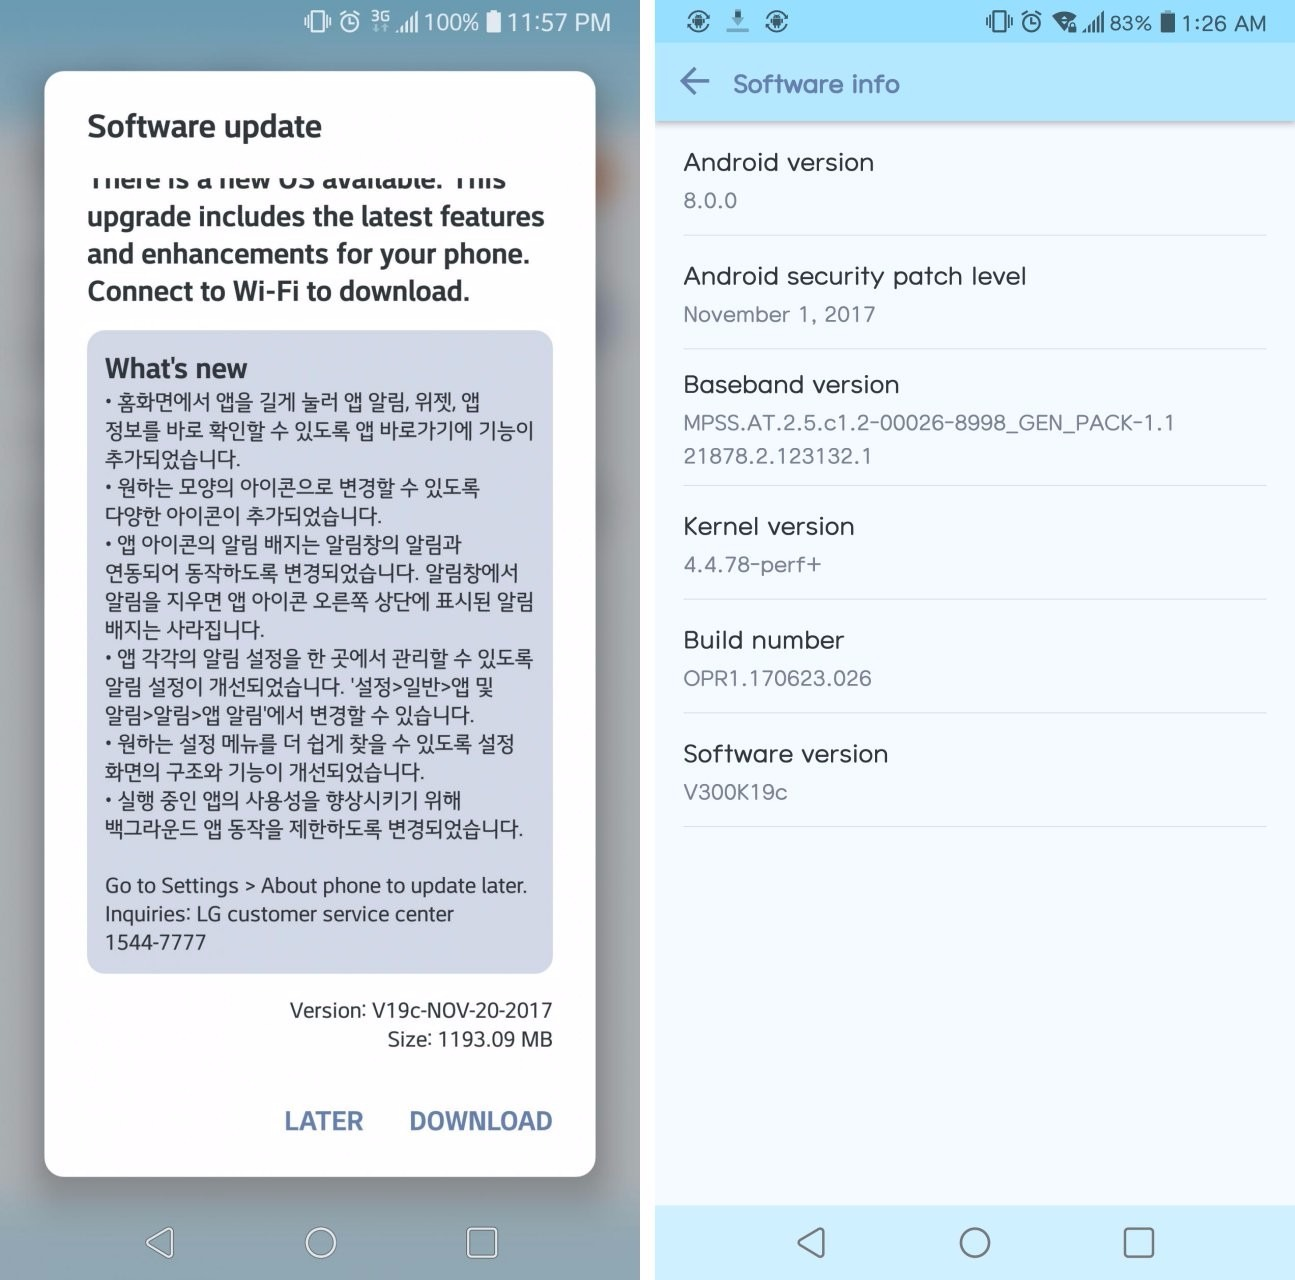 Nokia 8 Android 8.0 Oreo update starts rolling in Singapore